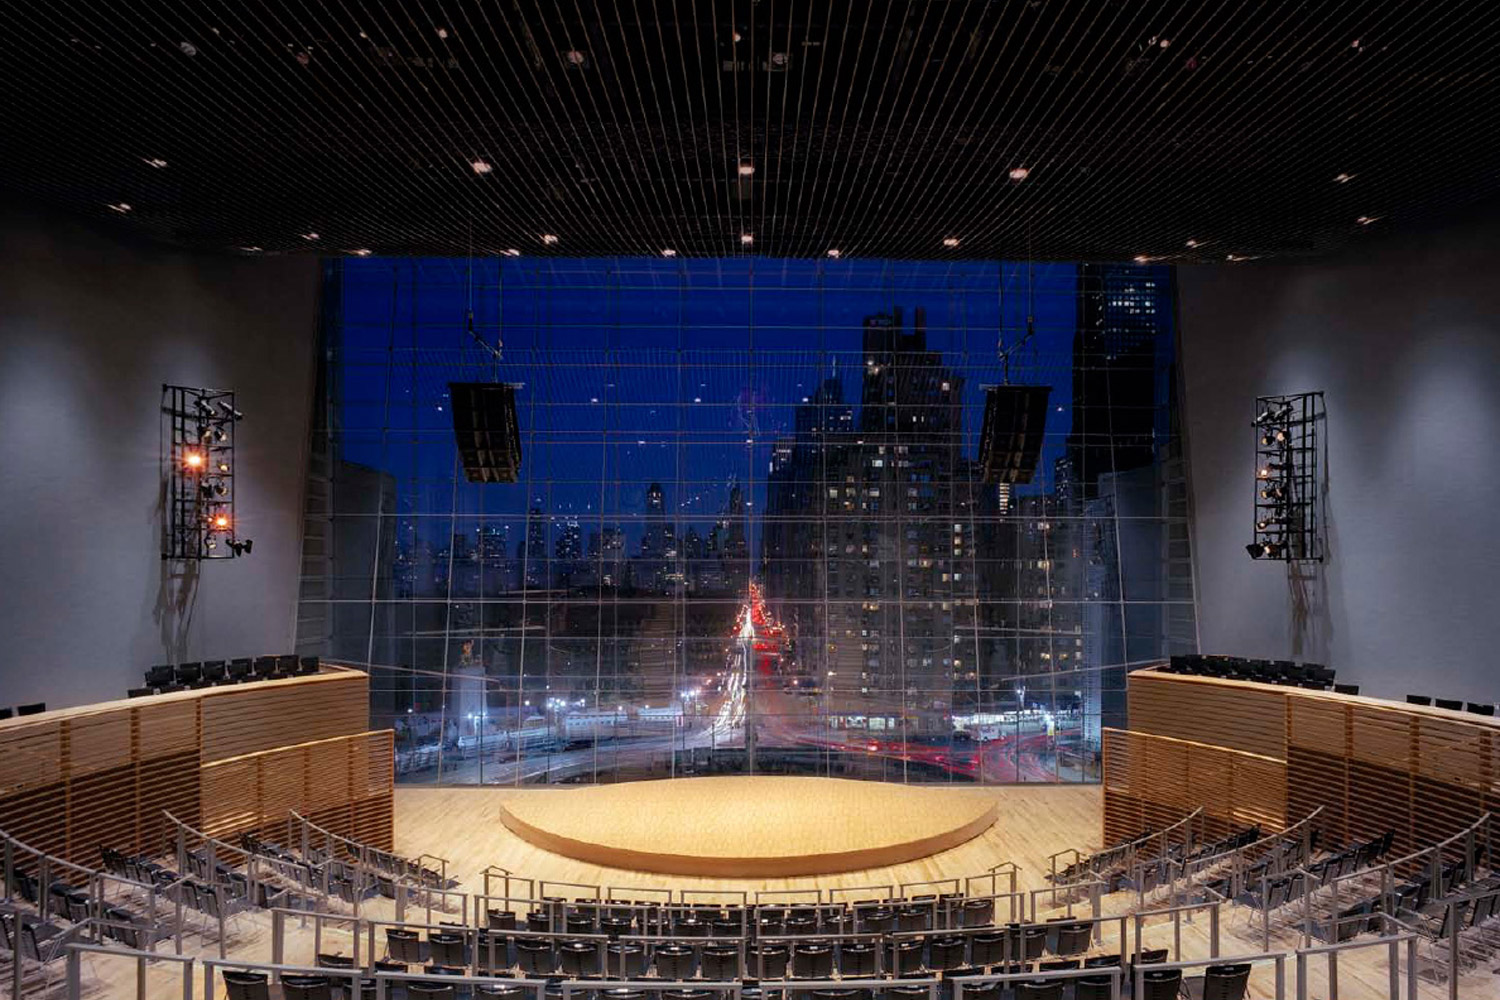 Jazz at Lincoln Center in Columbus Circus, NYC. Acoustic design and internal room acoustics by WSDG. Front city view.